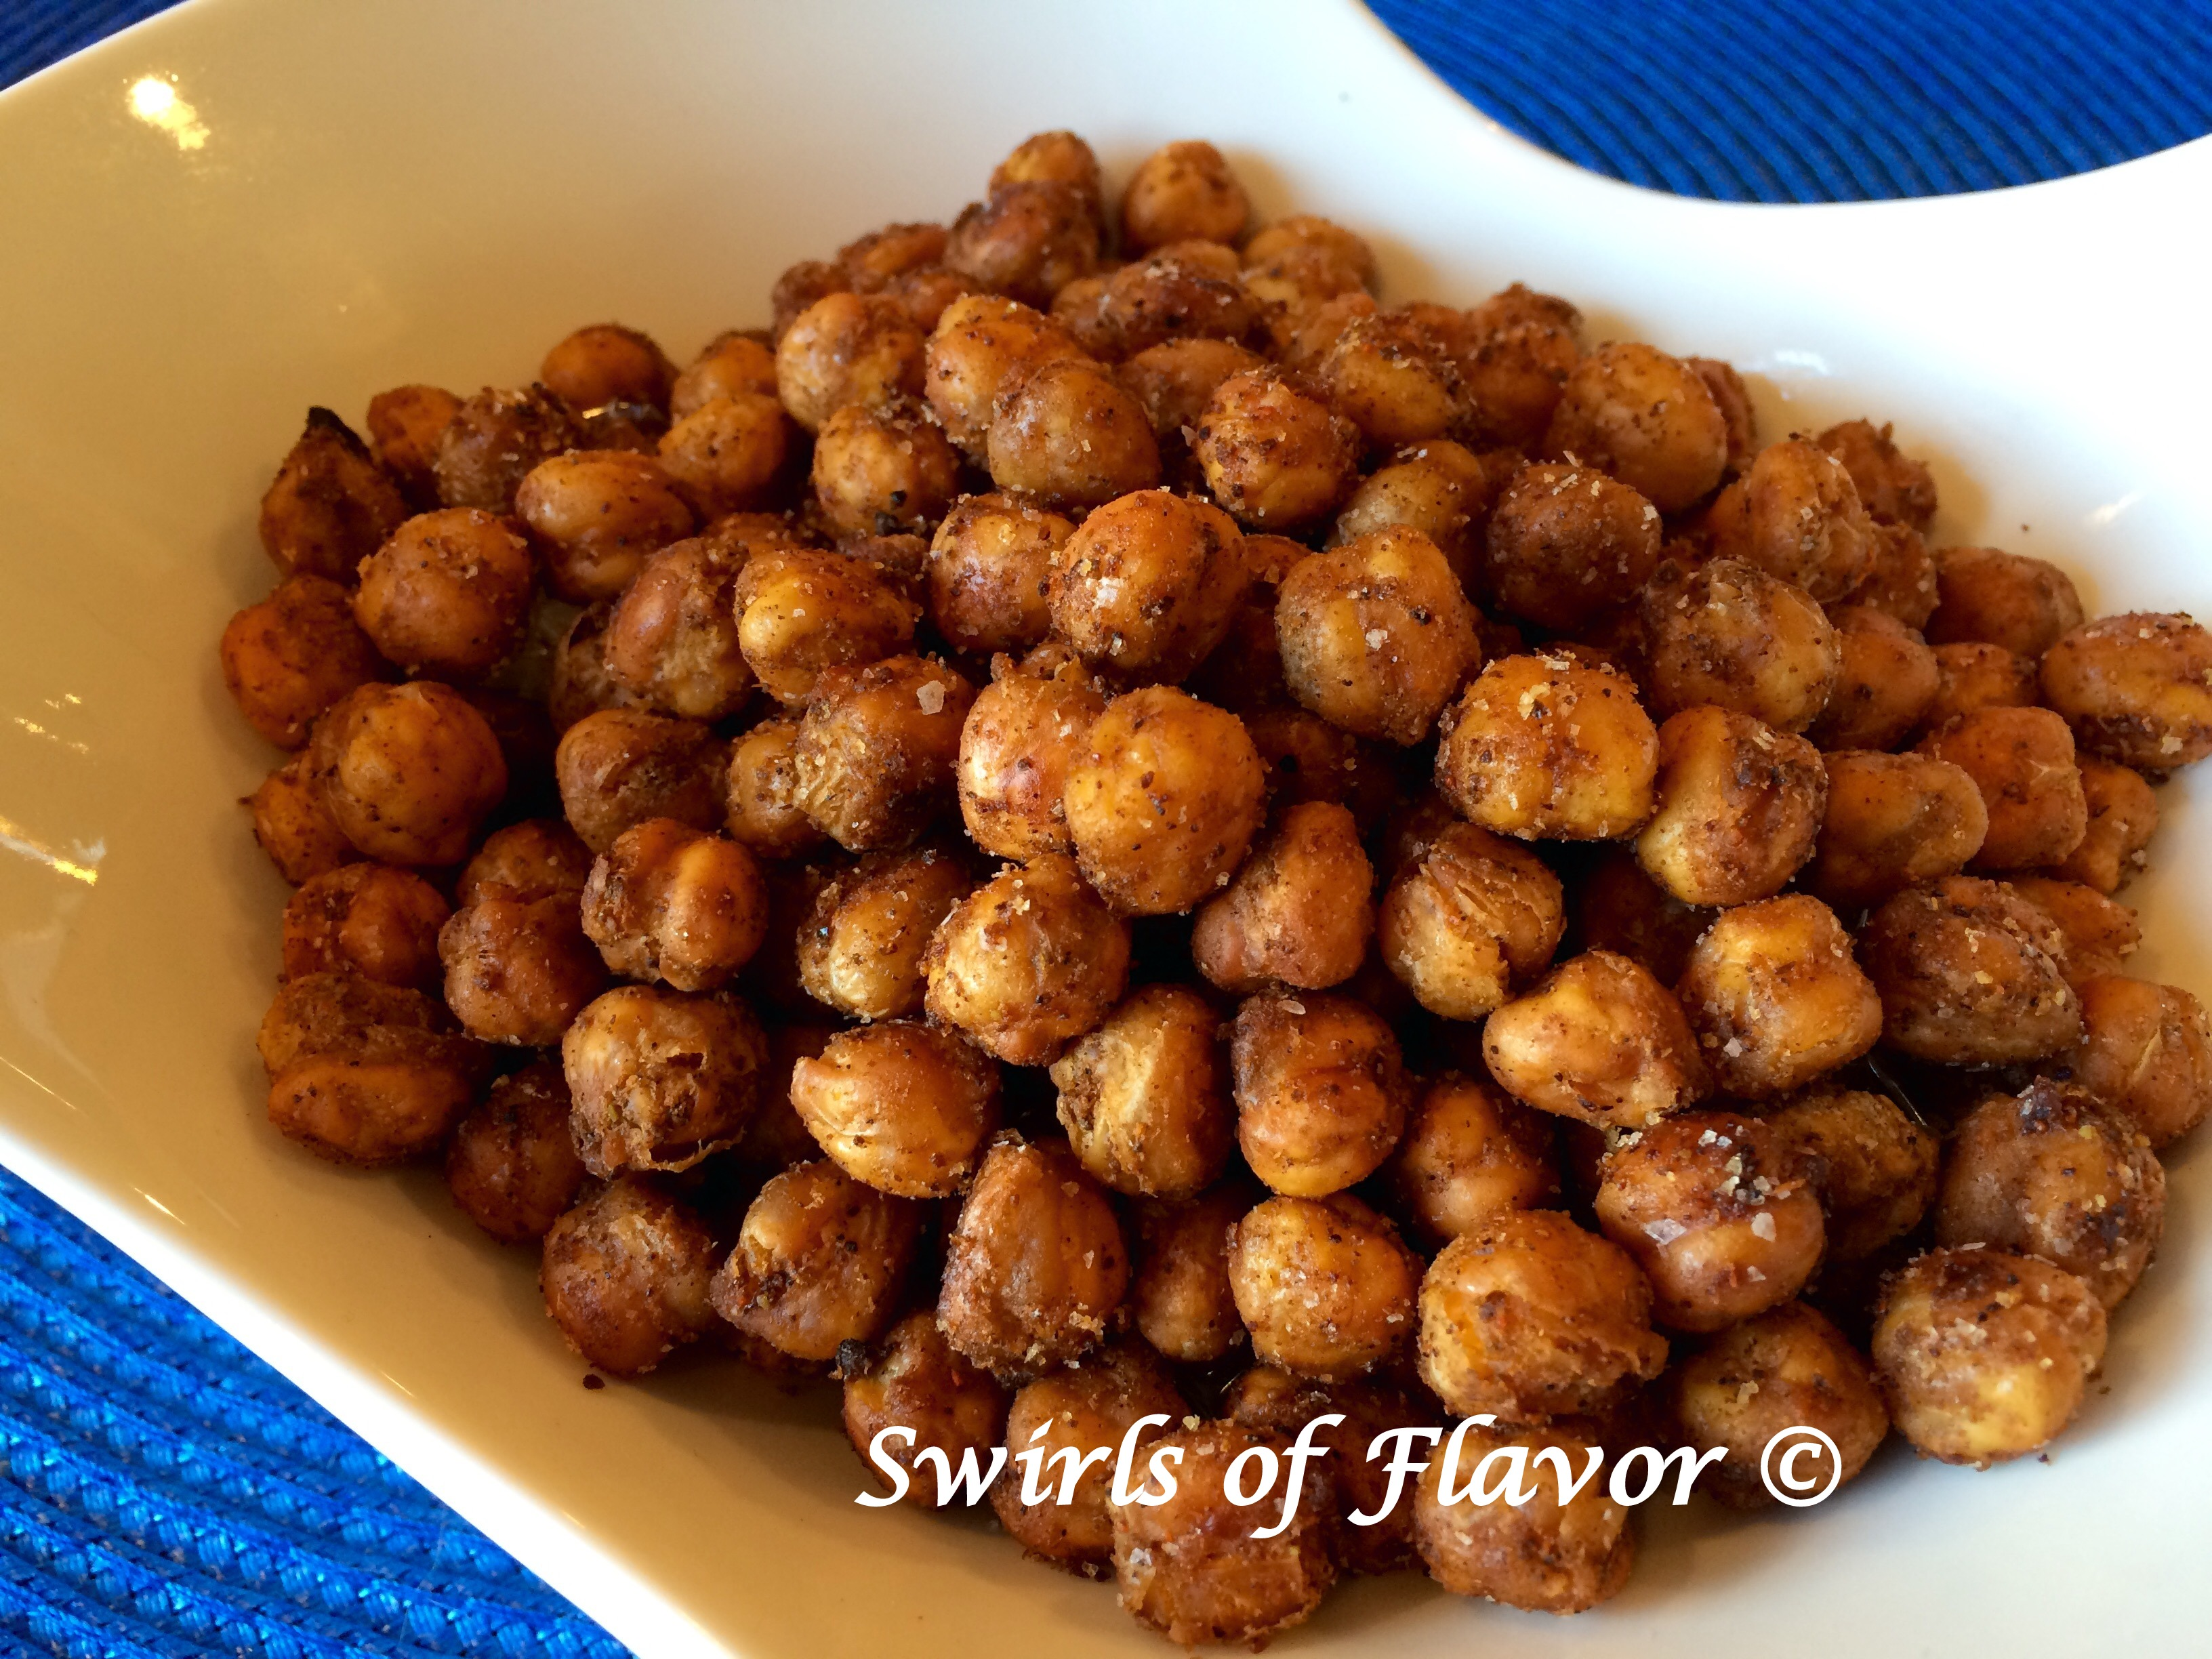 crispy chickpeas with chili seasoning in a whote bowl